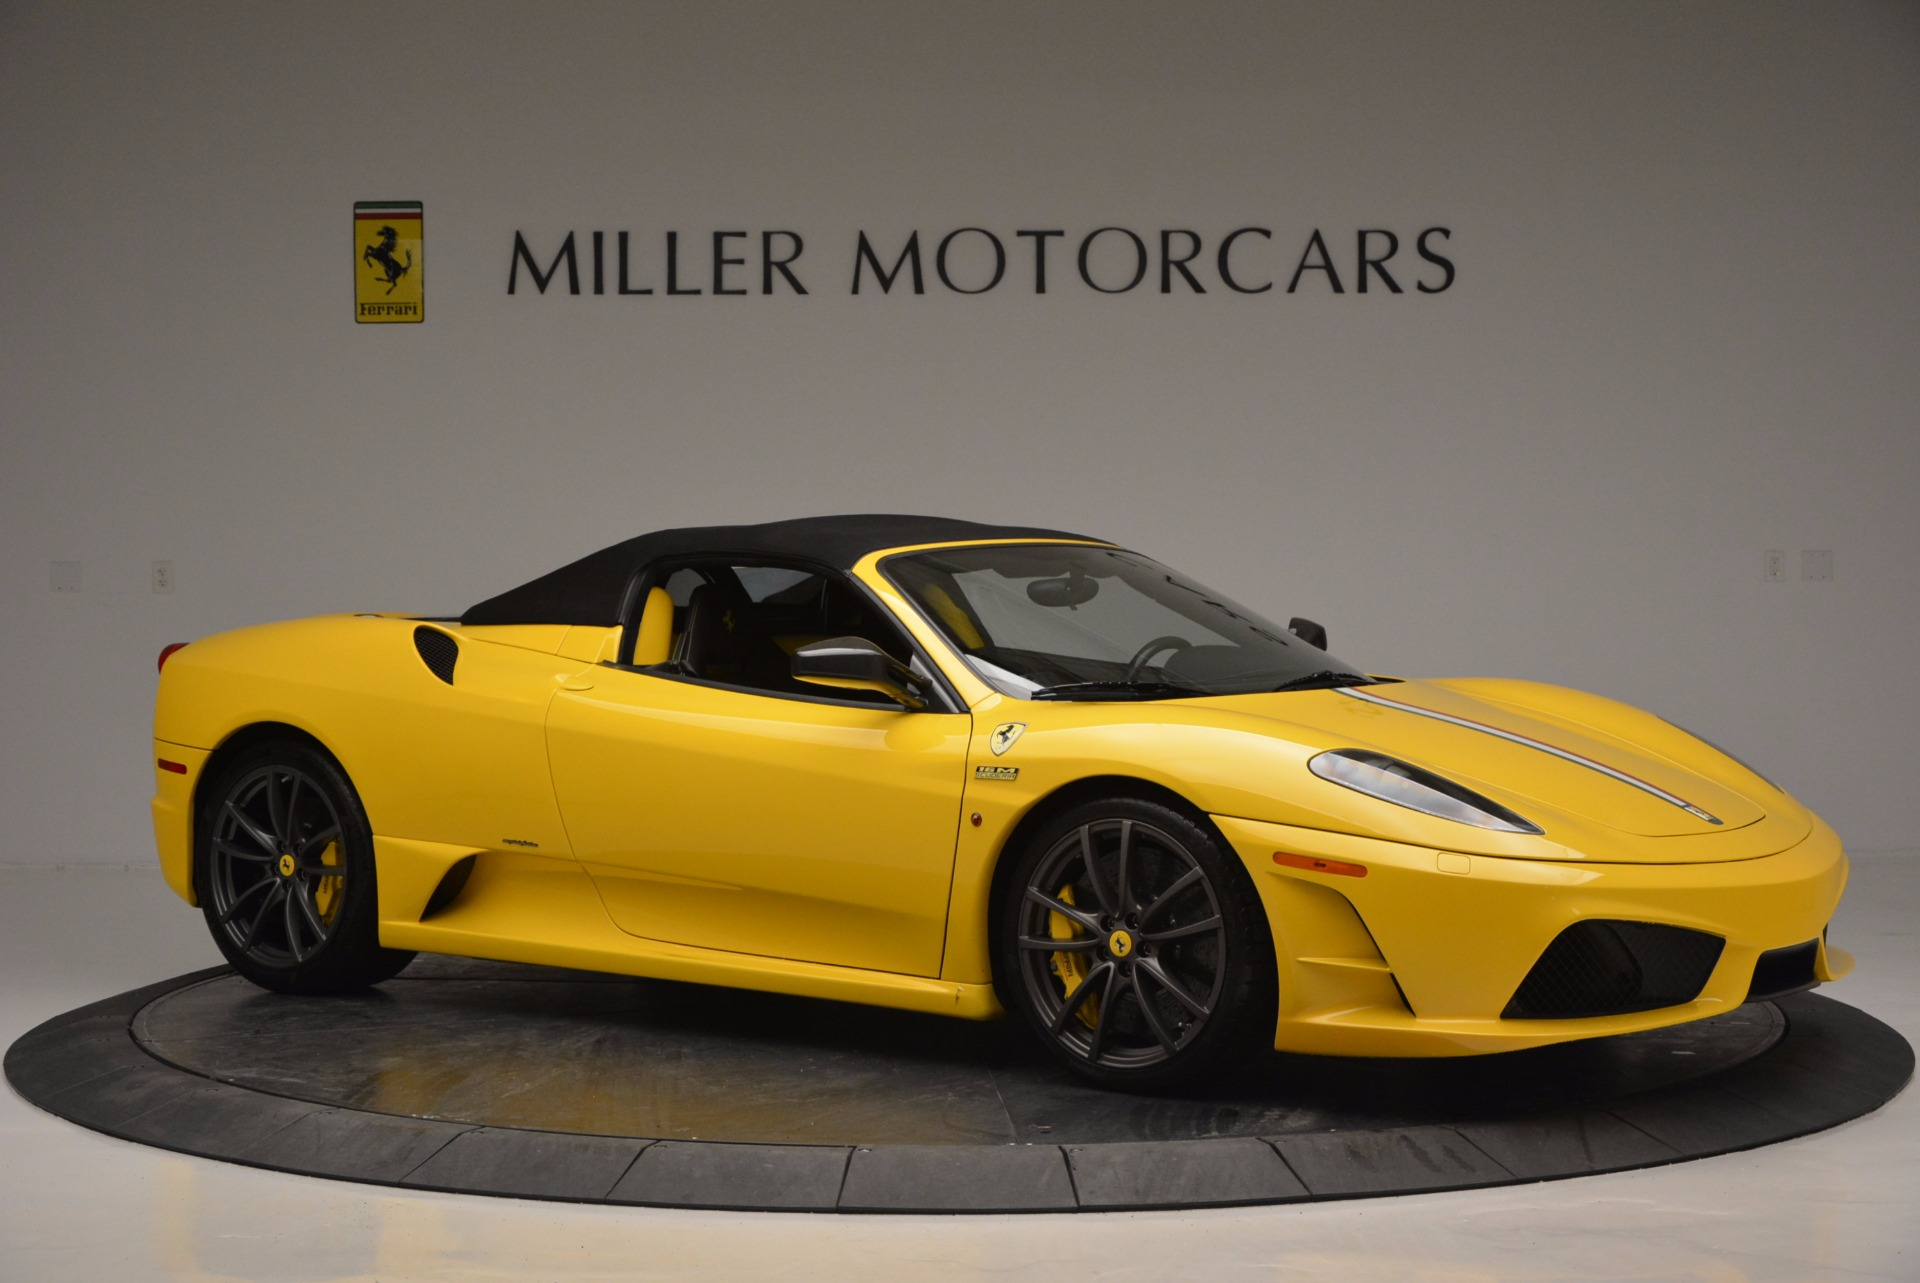 Used 2009 Ferrari F430 Scuderia 16M For Sale In Greenwich, CT 856_p22